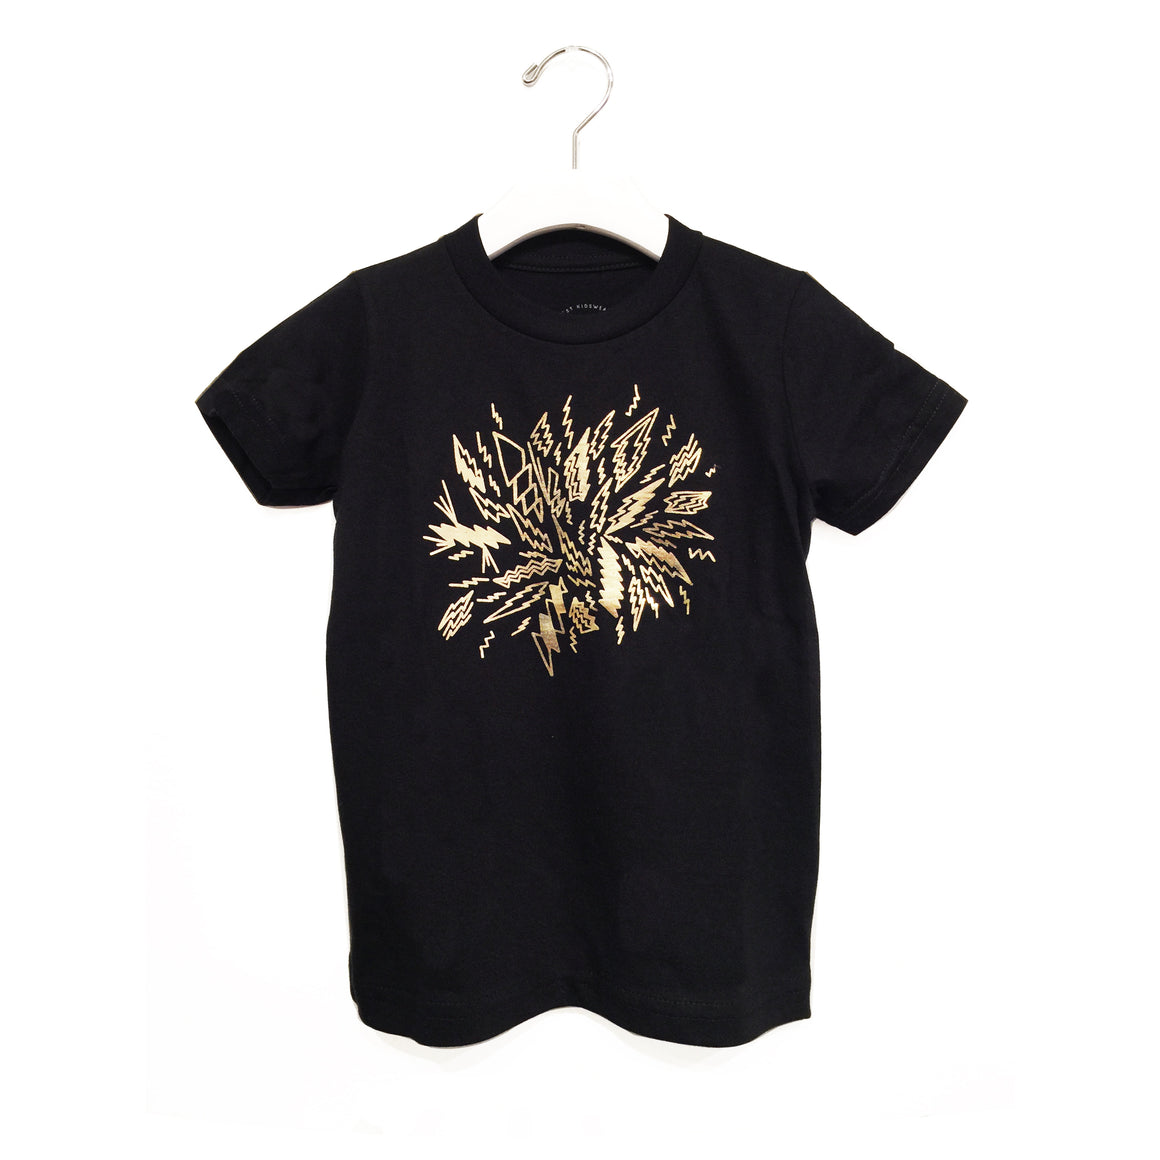 Kira x Coco Kids Golden Bolts Graphic T-shirt, Black